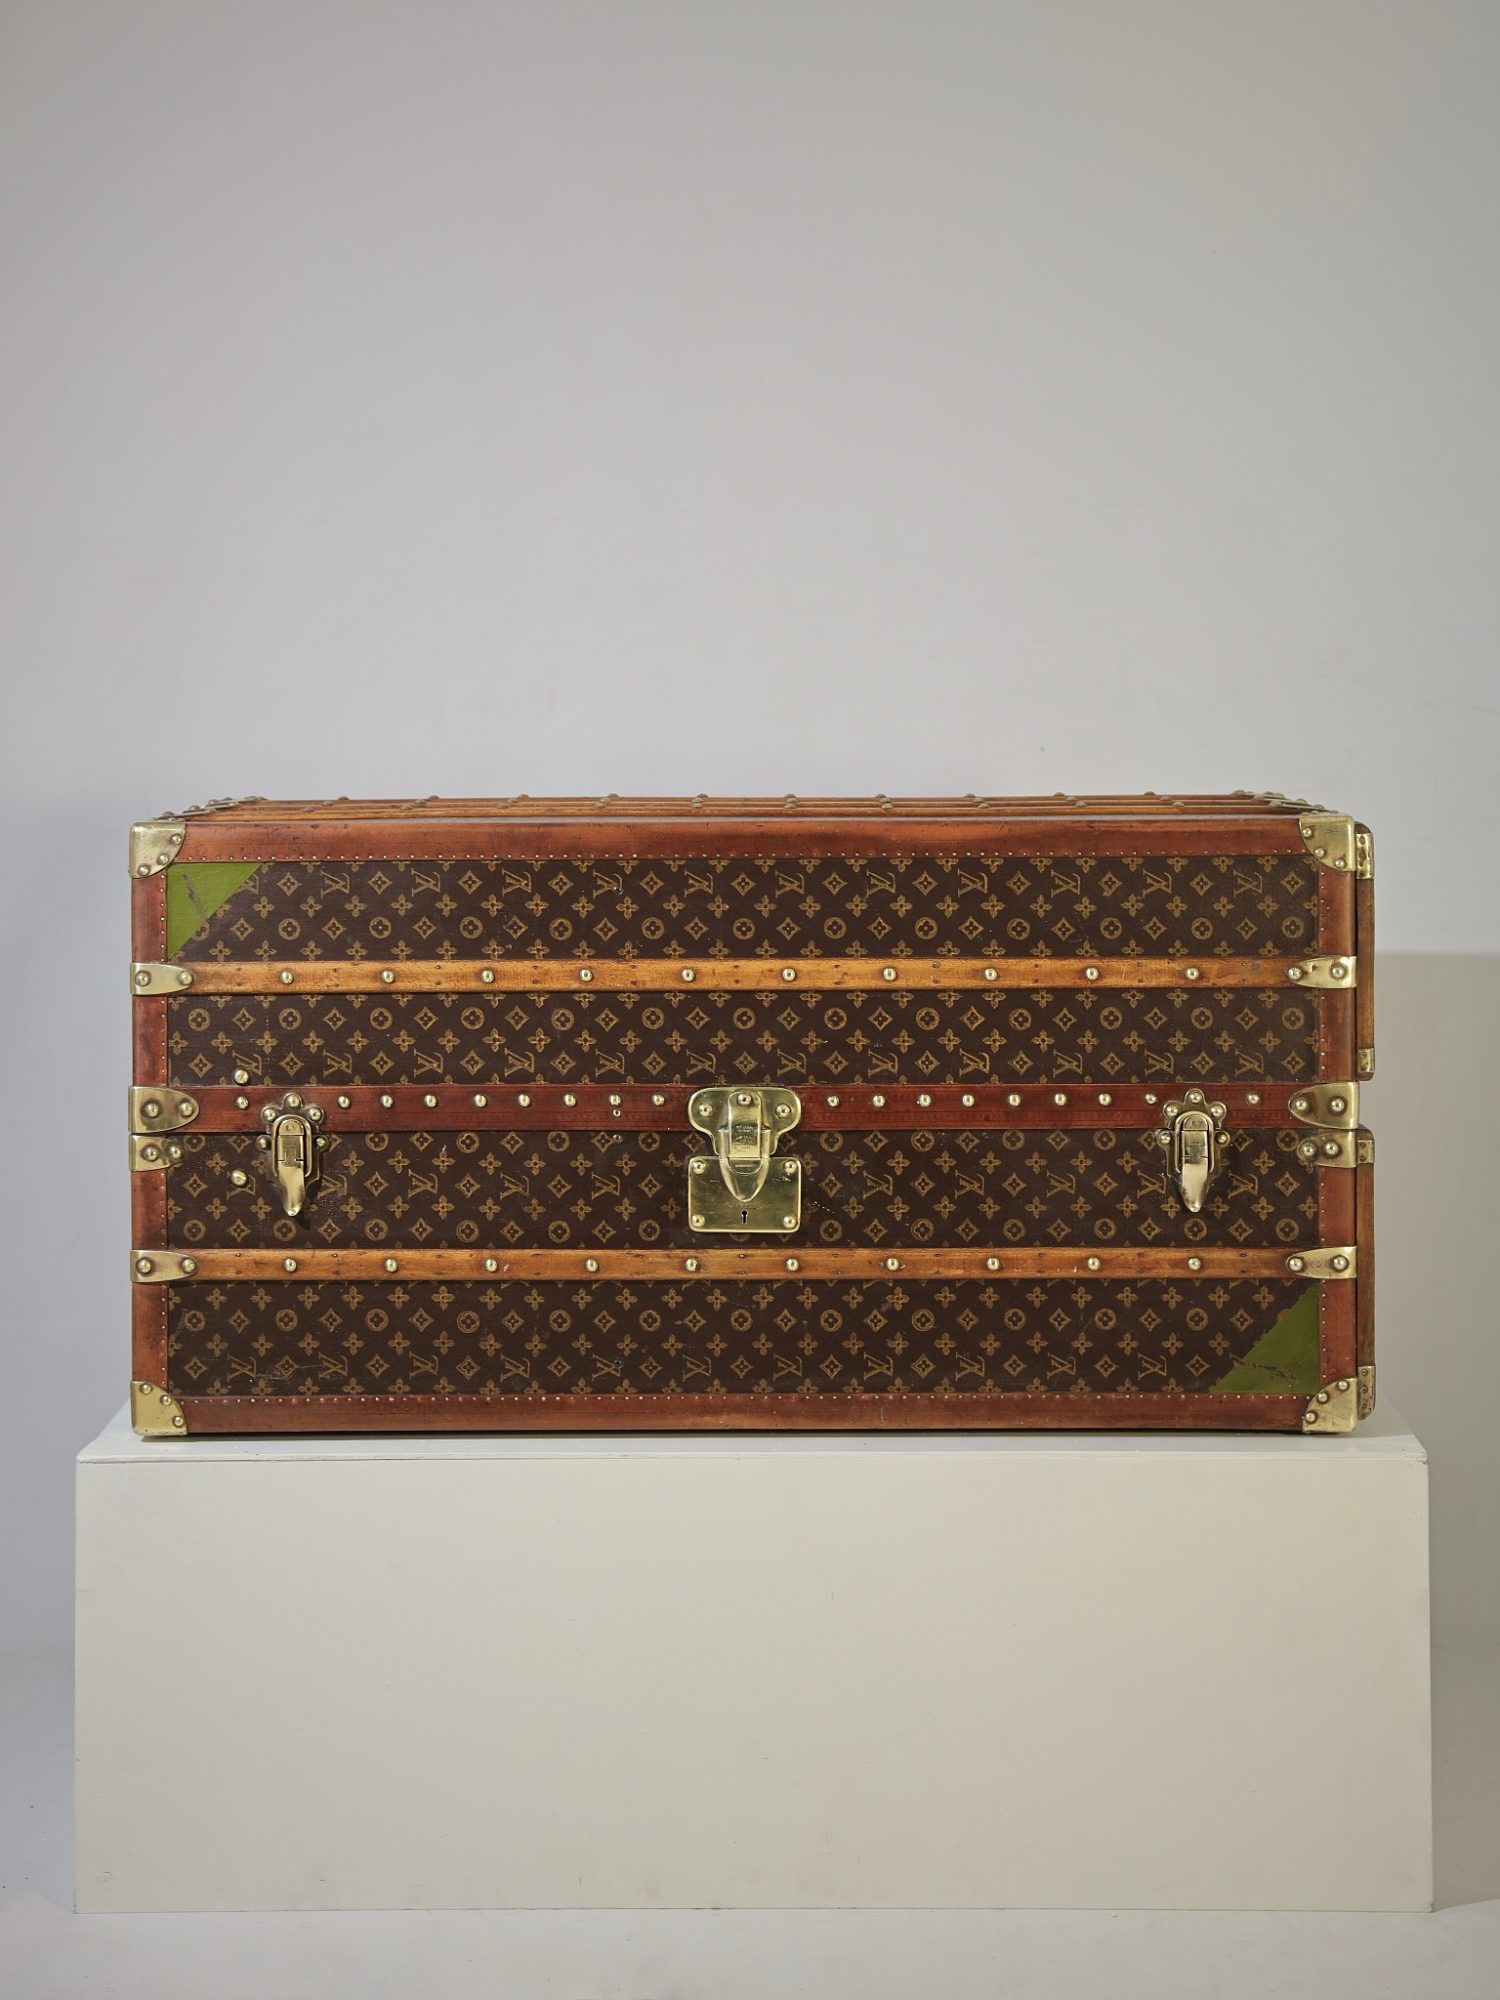 the-well-traveled-trunk-louis-vuitton-thumbnail-product-5721-1